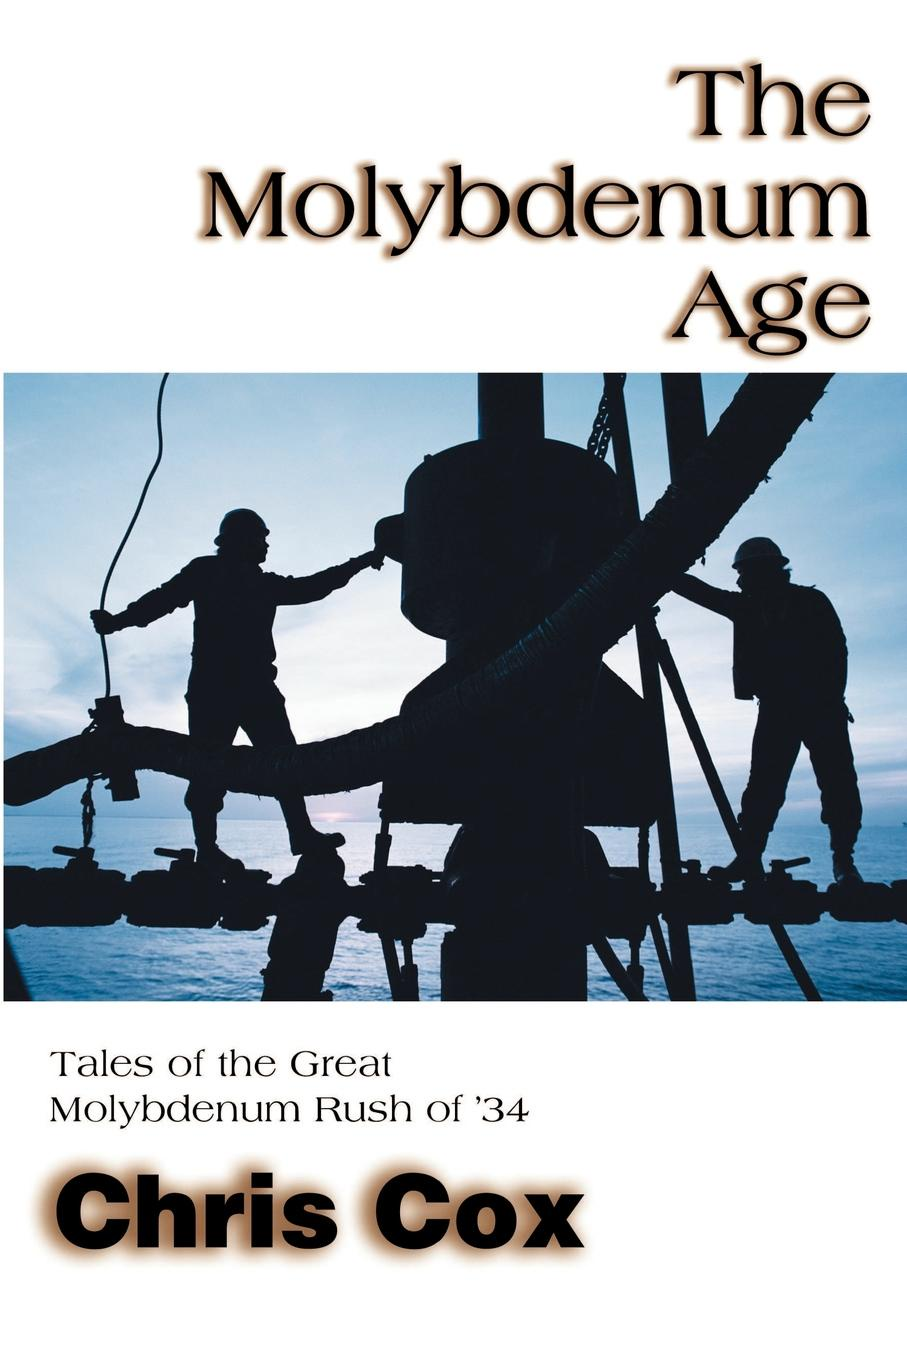 лучшая цена Chris Cox The Molybdenum Age. Tales of the Great Molybdenum Rush of '34